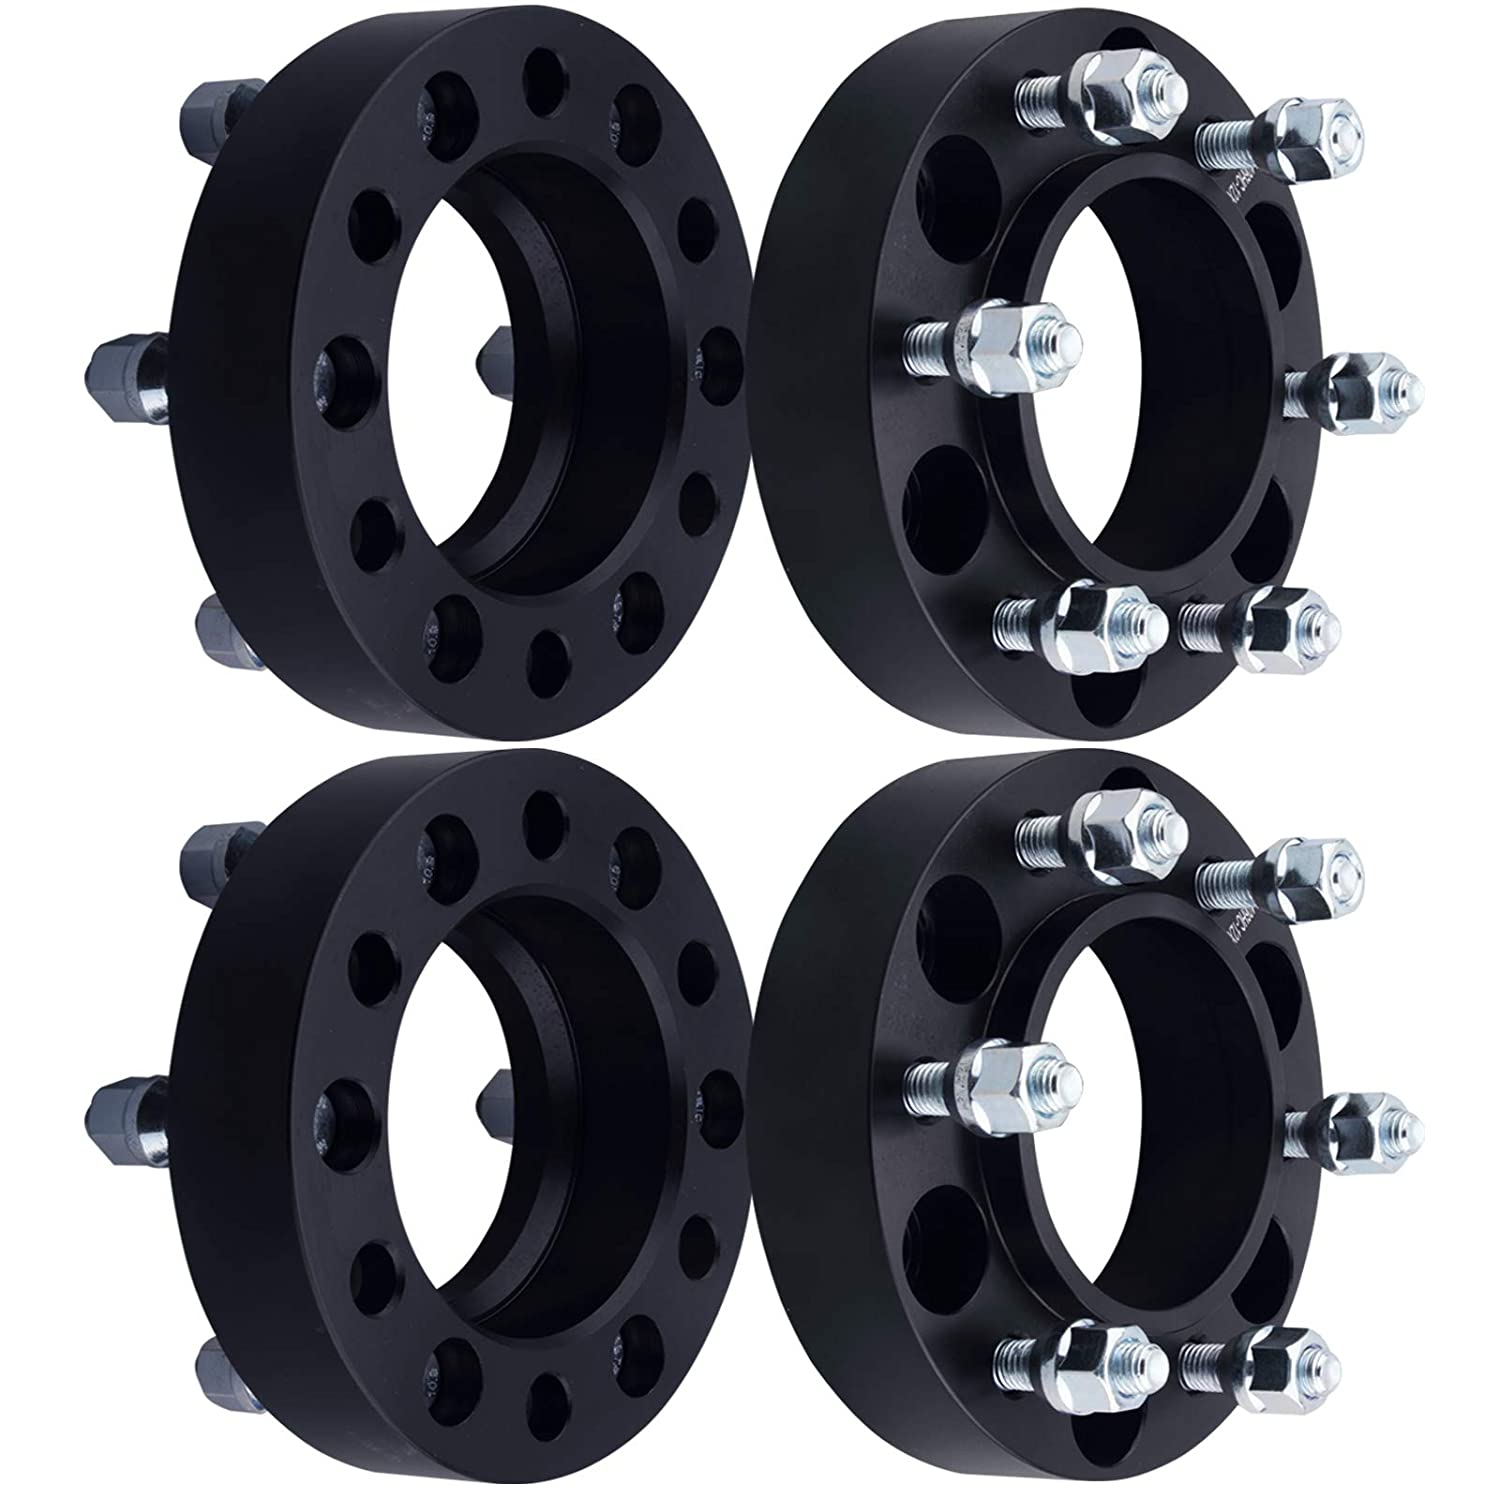 DCVAMOUS 6 Lug Black Hubcentric Wheel Spacers 6x5.5 with 12x1.5 Studs for 2001-2018 Toyota Tacoma,1996-2018 Toyota 4Runner,2000-2006 Tundra,2007-2014 FJ Cruiser,2001-2007 Sequoia(4PC, 1.25' Thick) 1.25 Thick) 1001-001004-3141